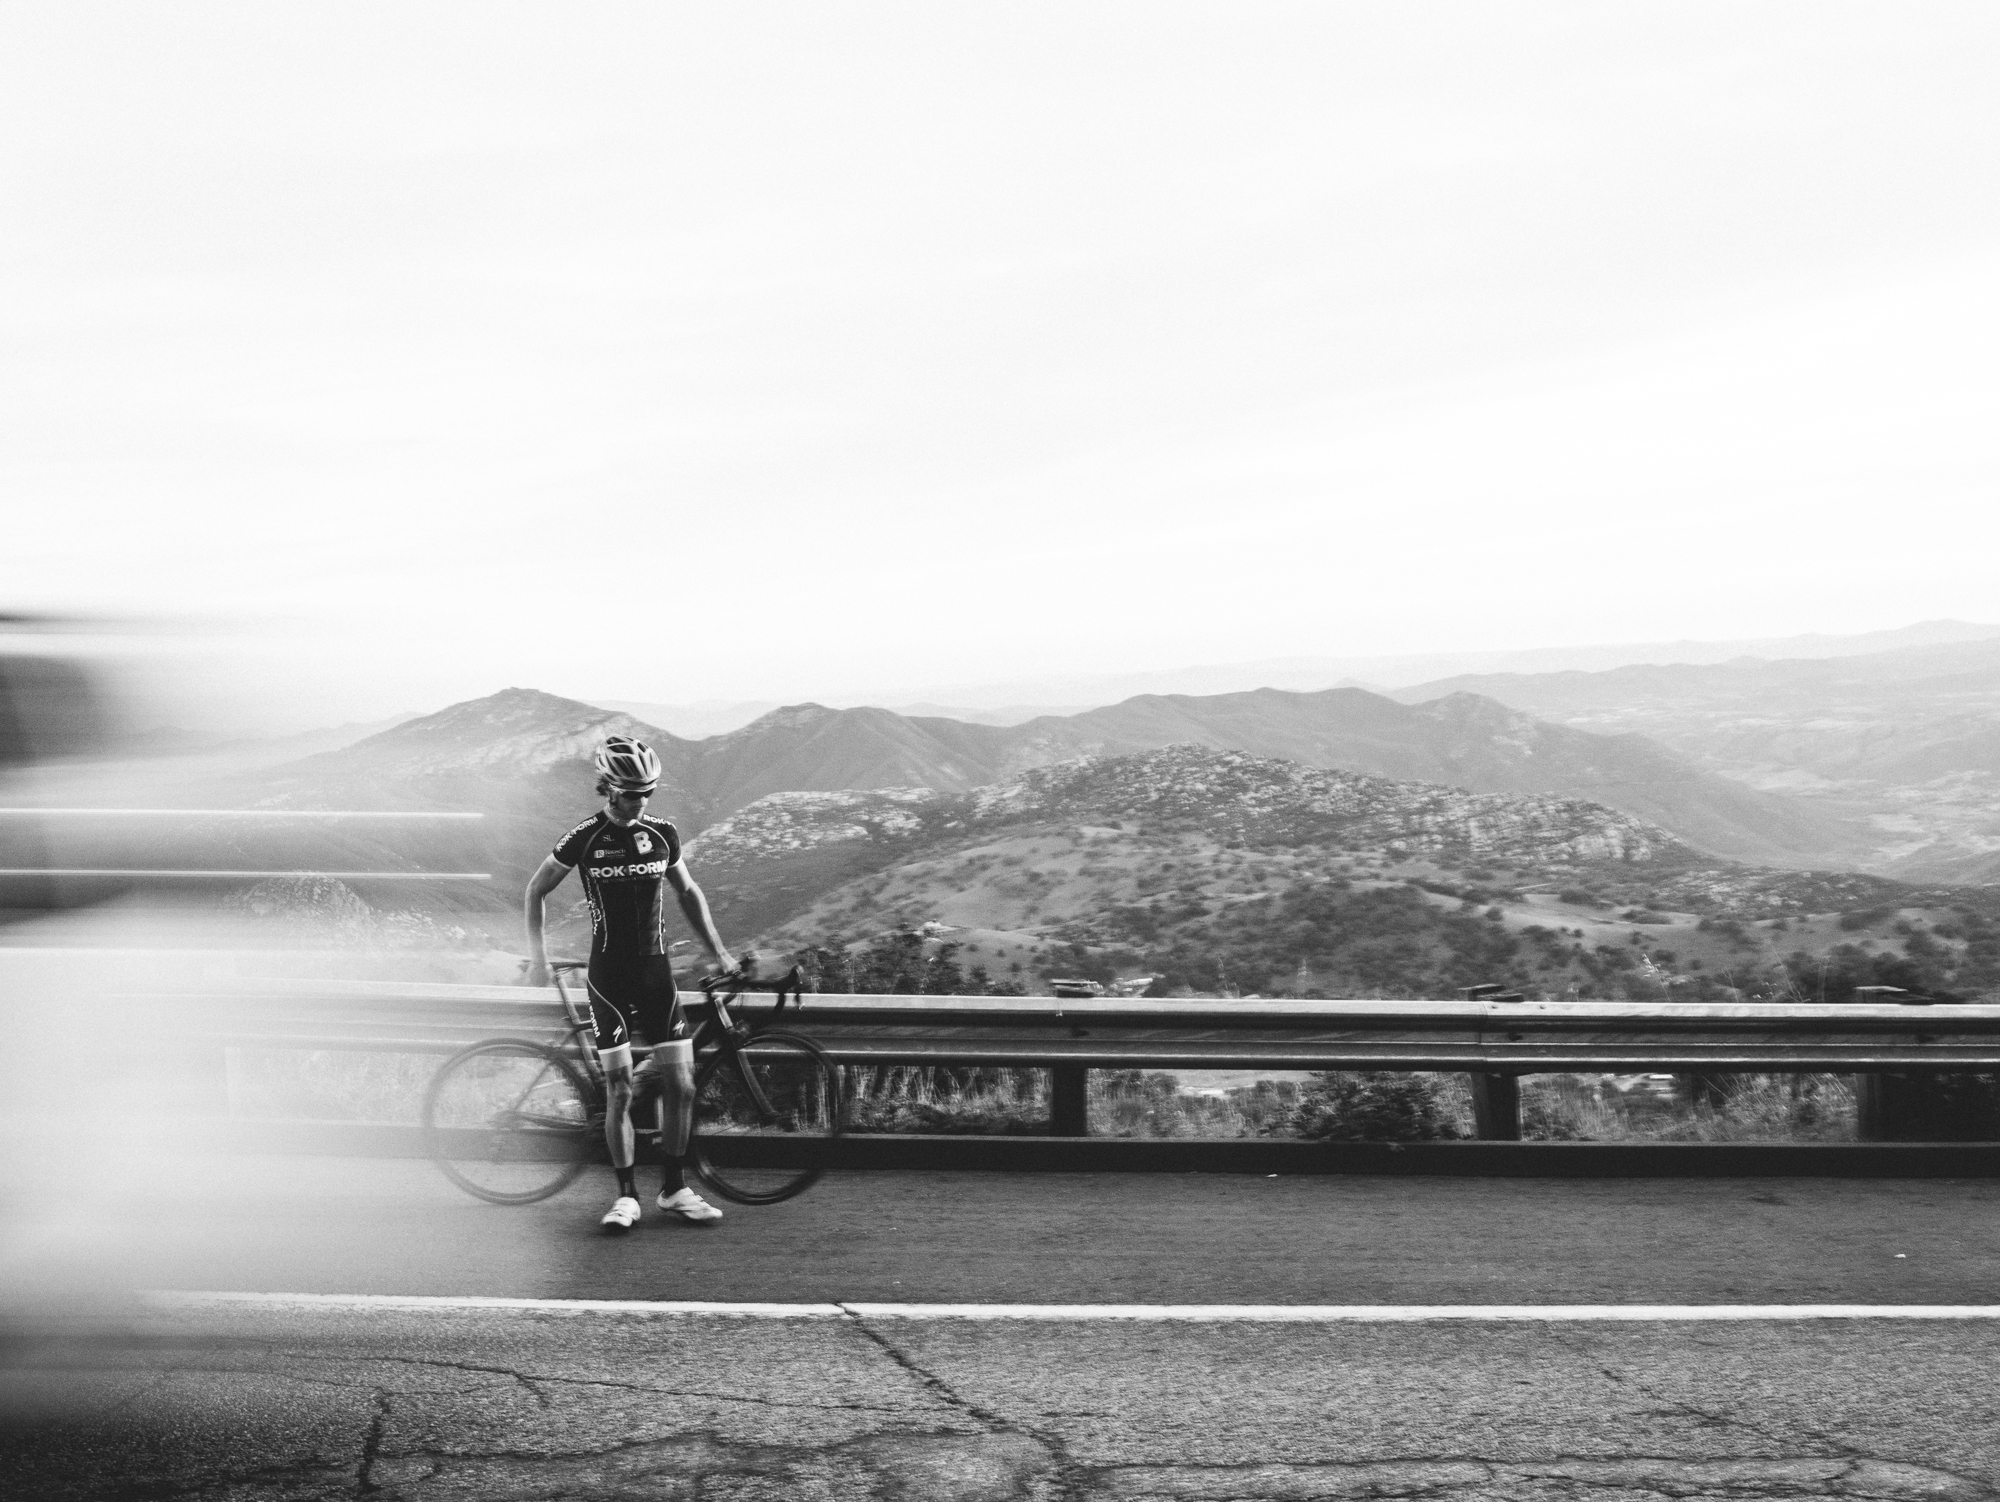 ©Isaiah & Taylor Photography - Los Angeles Lifestyle Photographer - Hillside Bicycle Action-026.jpg